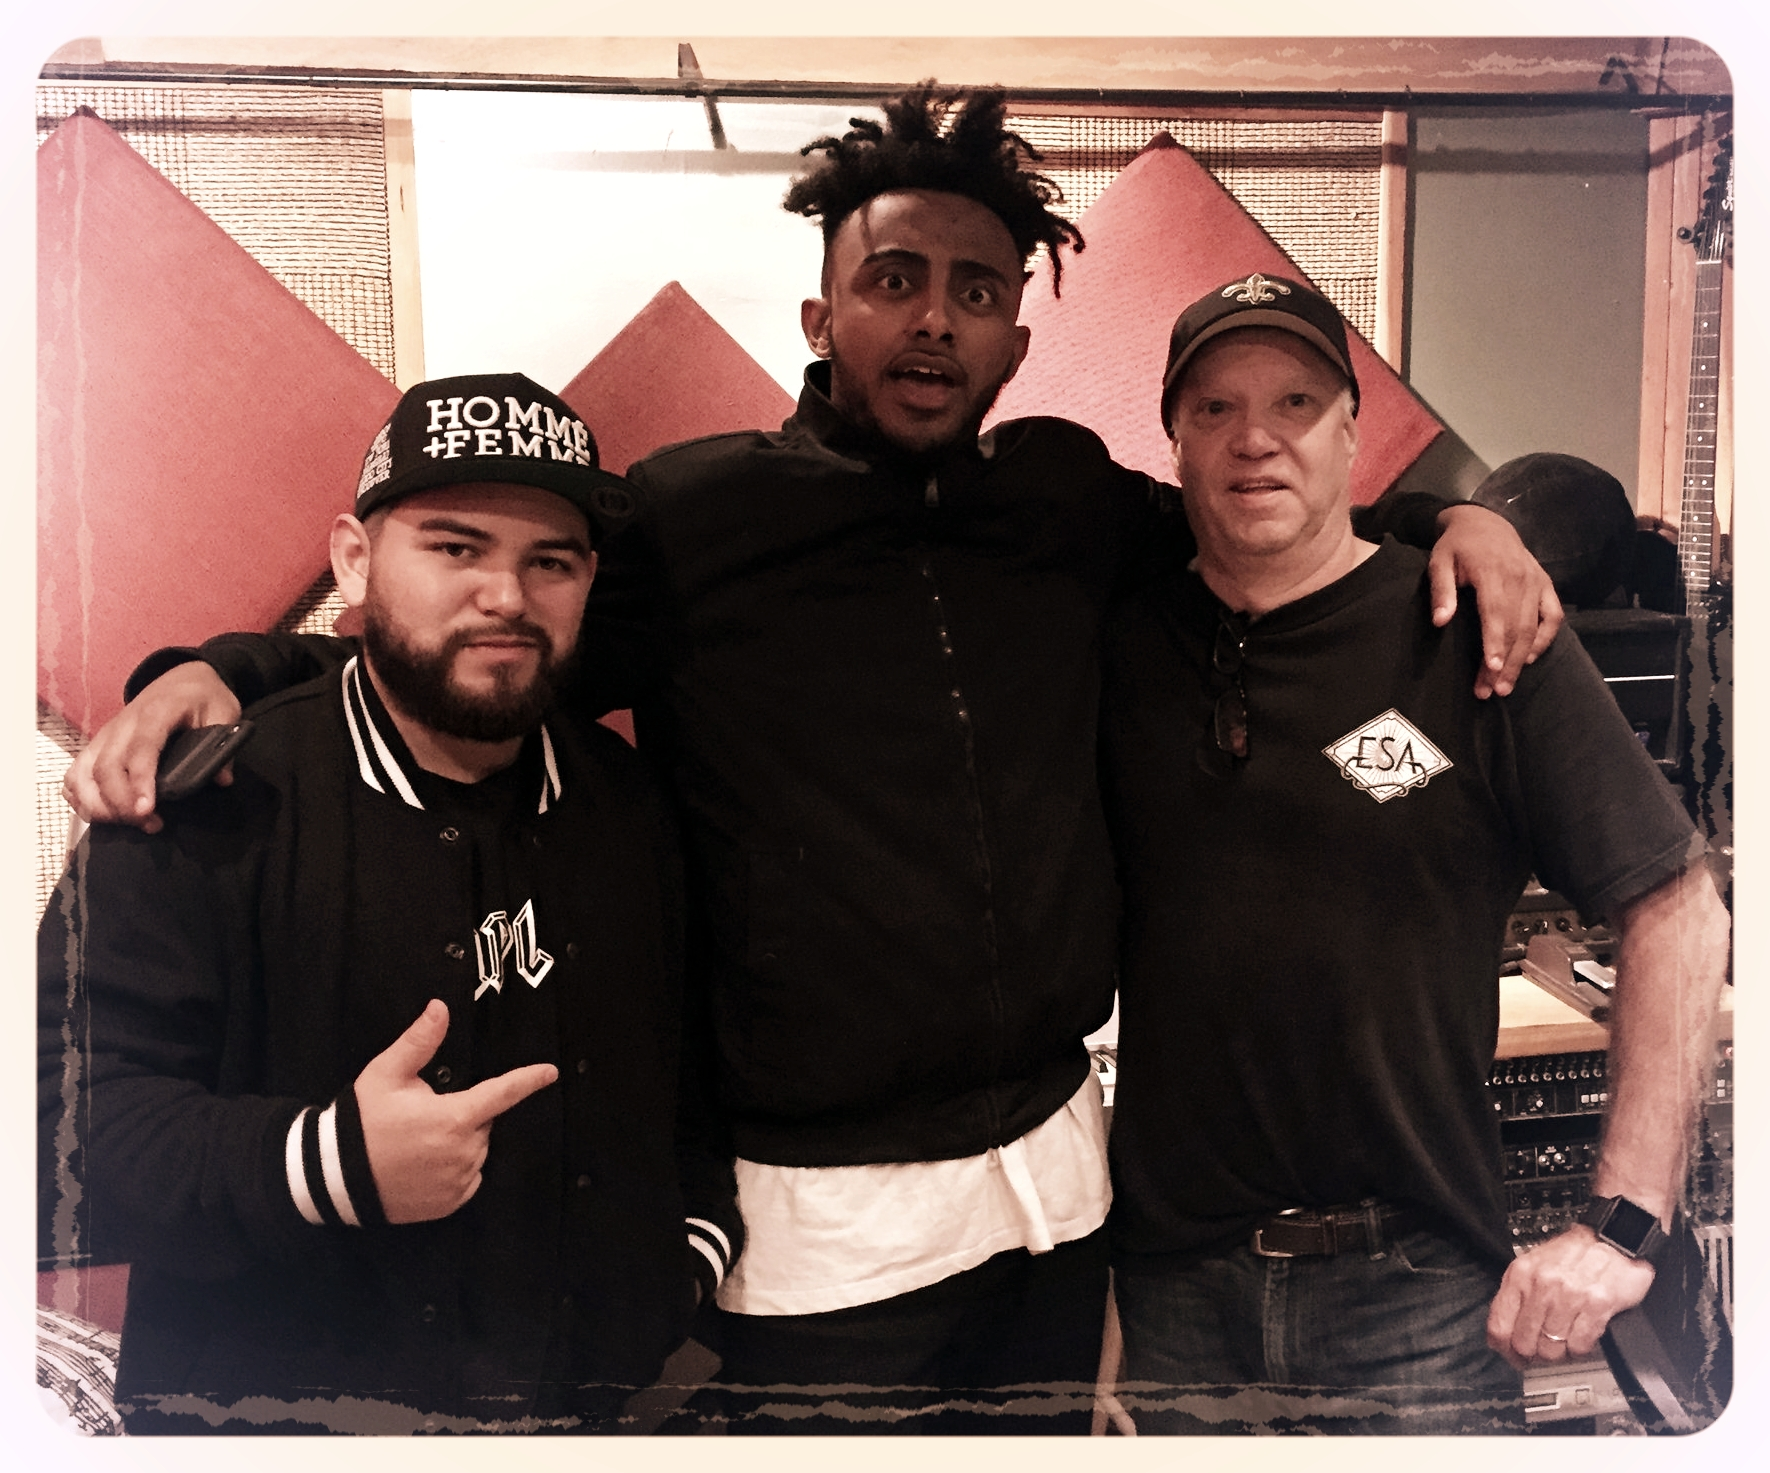 Pictured with super engineer Morning Estrada ( MixedByMorning )and dB of ES Audio